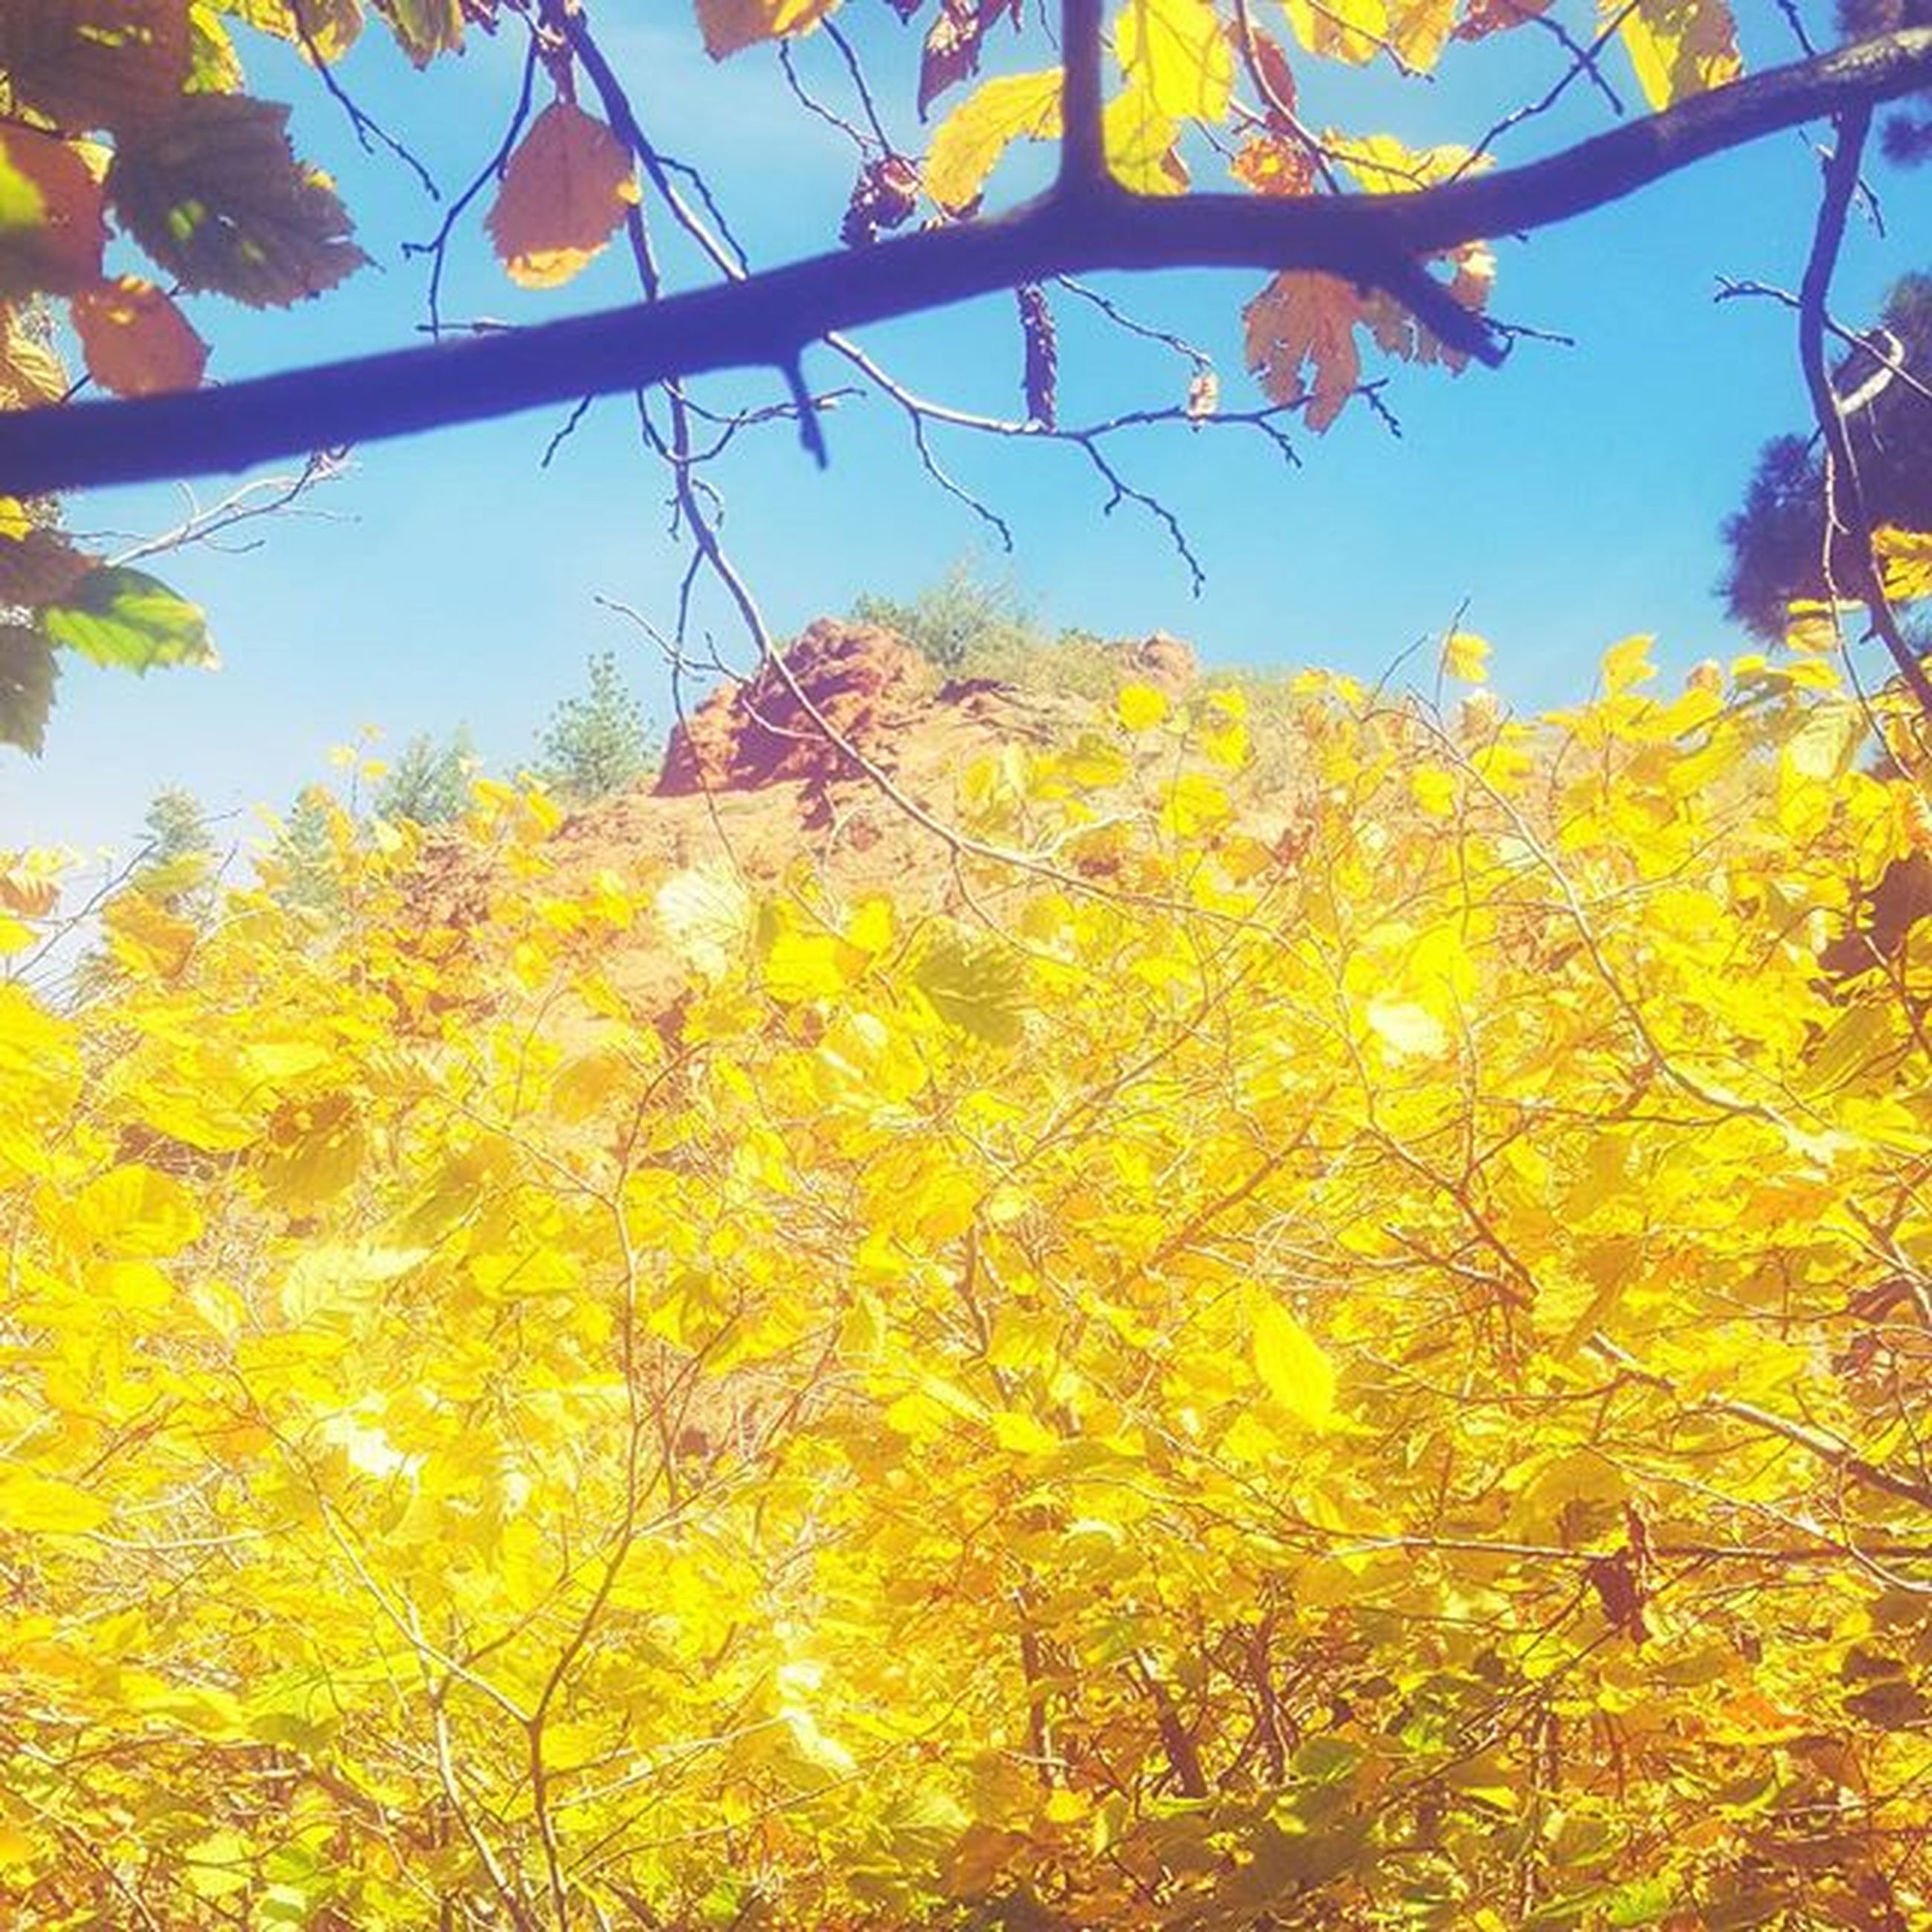 tree, yellow, branch, low angle view, autumn, growth, change, beauty in nature, nature, season, clear sky, tranquility, sunlight, sky, leaf, orange color, outdoors, scenics, no people, day